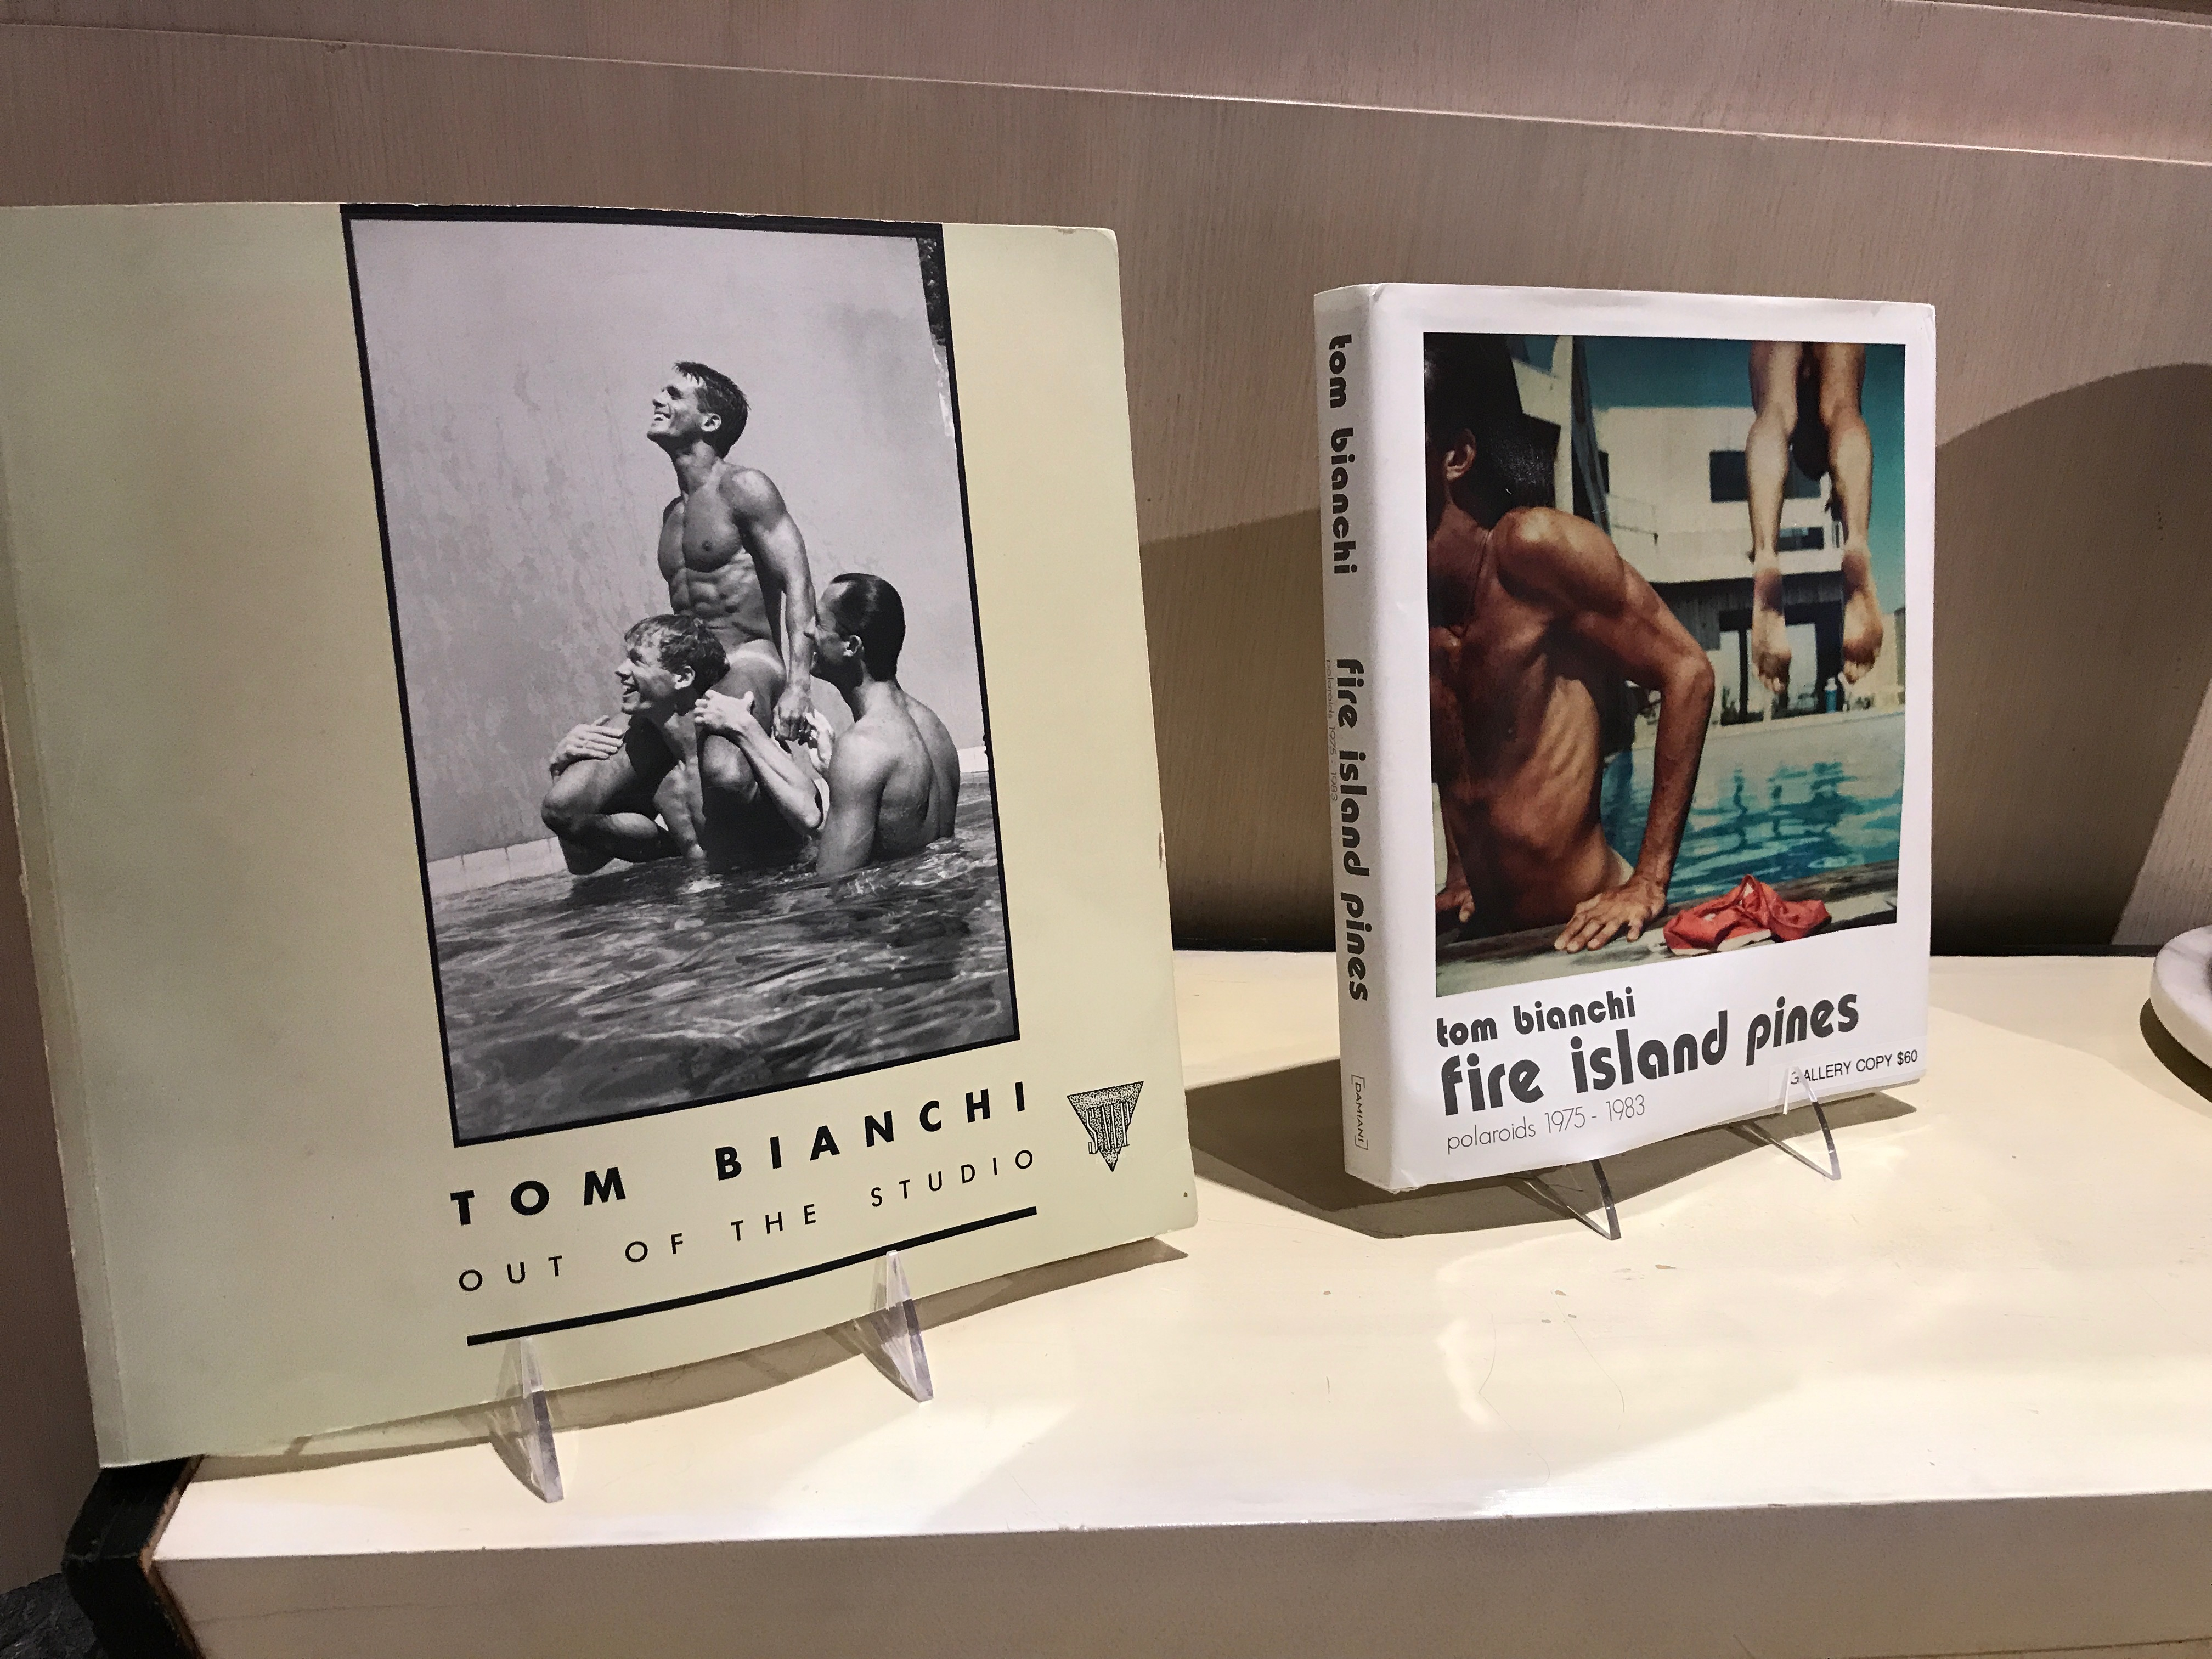 Out of the Studio and Fire Island Pines by Tom Bianchi